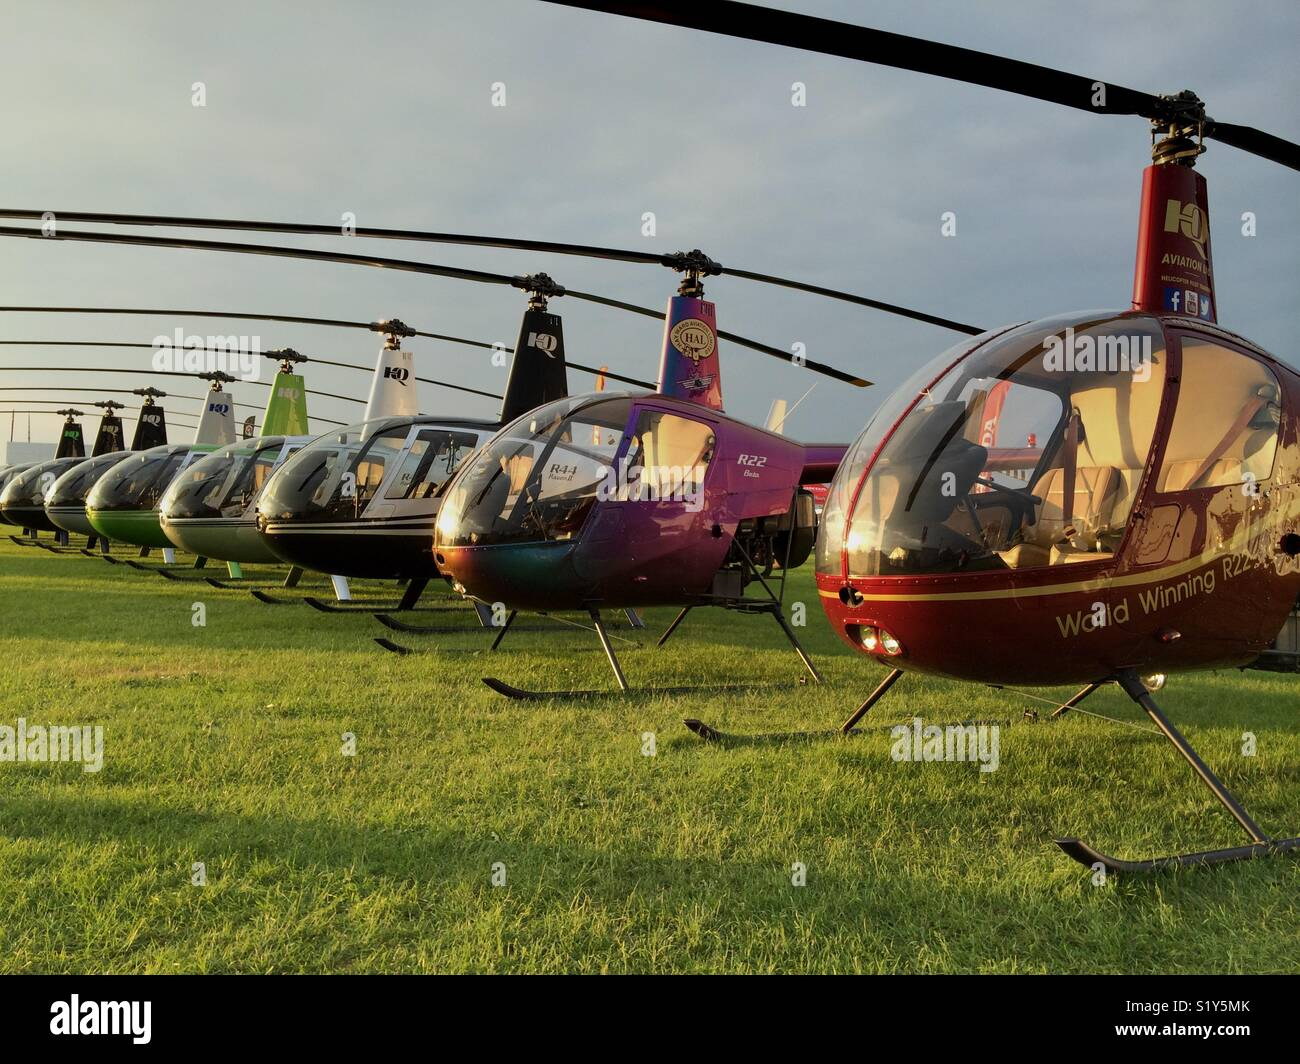 Robinson helicopters parked in a row - Stock Image